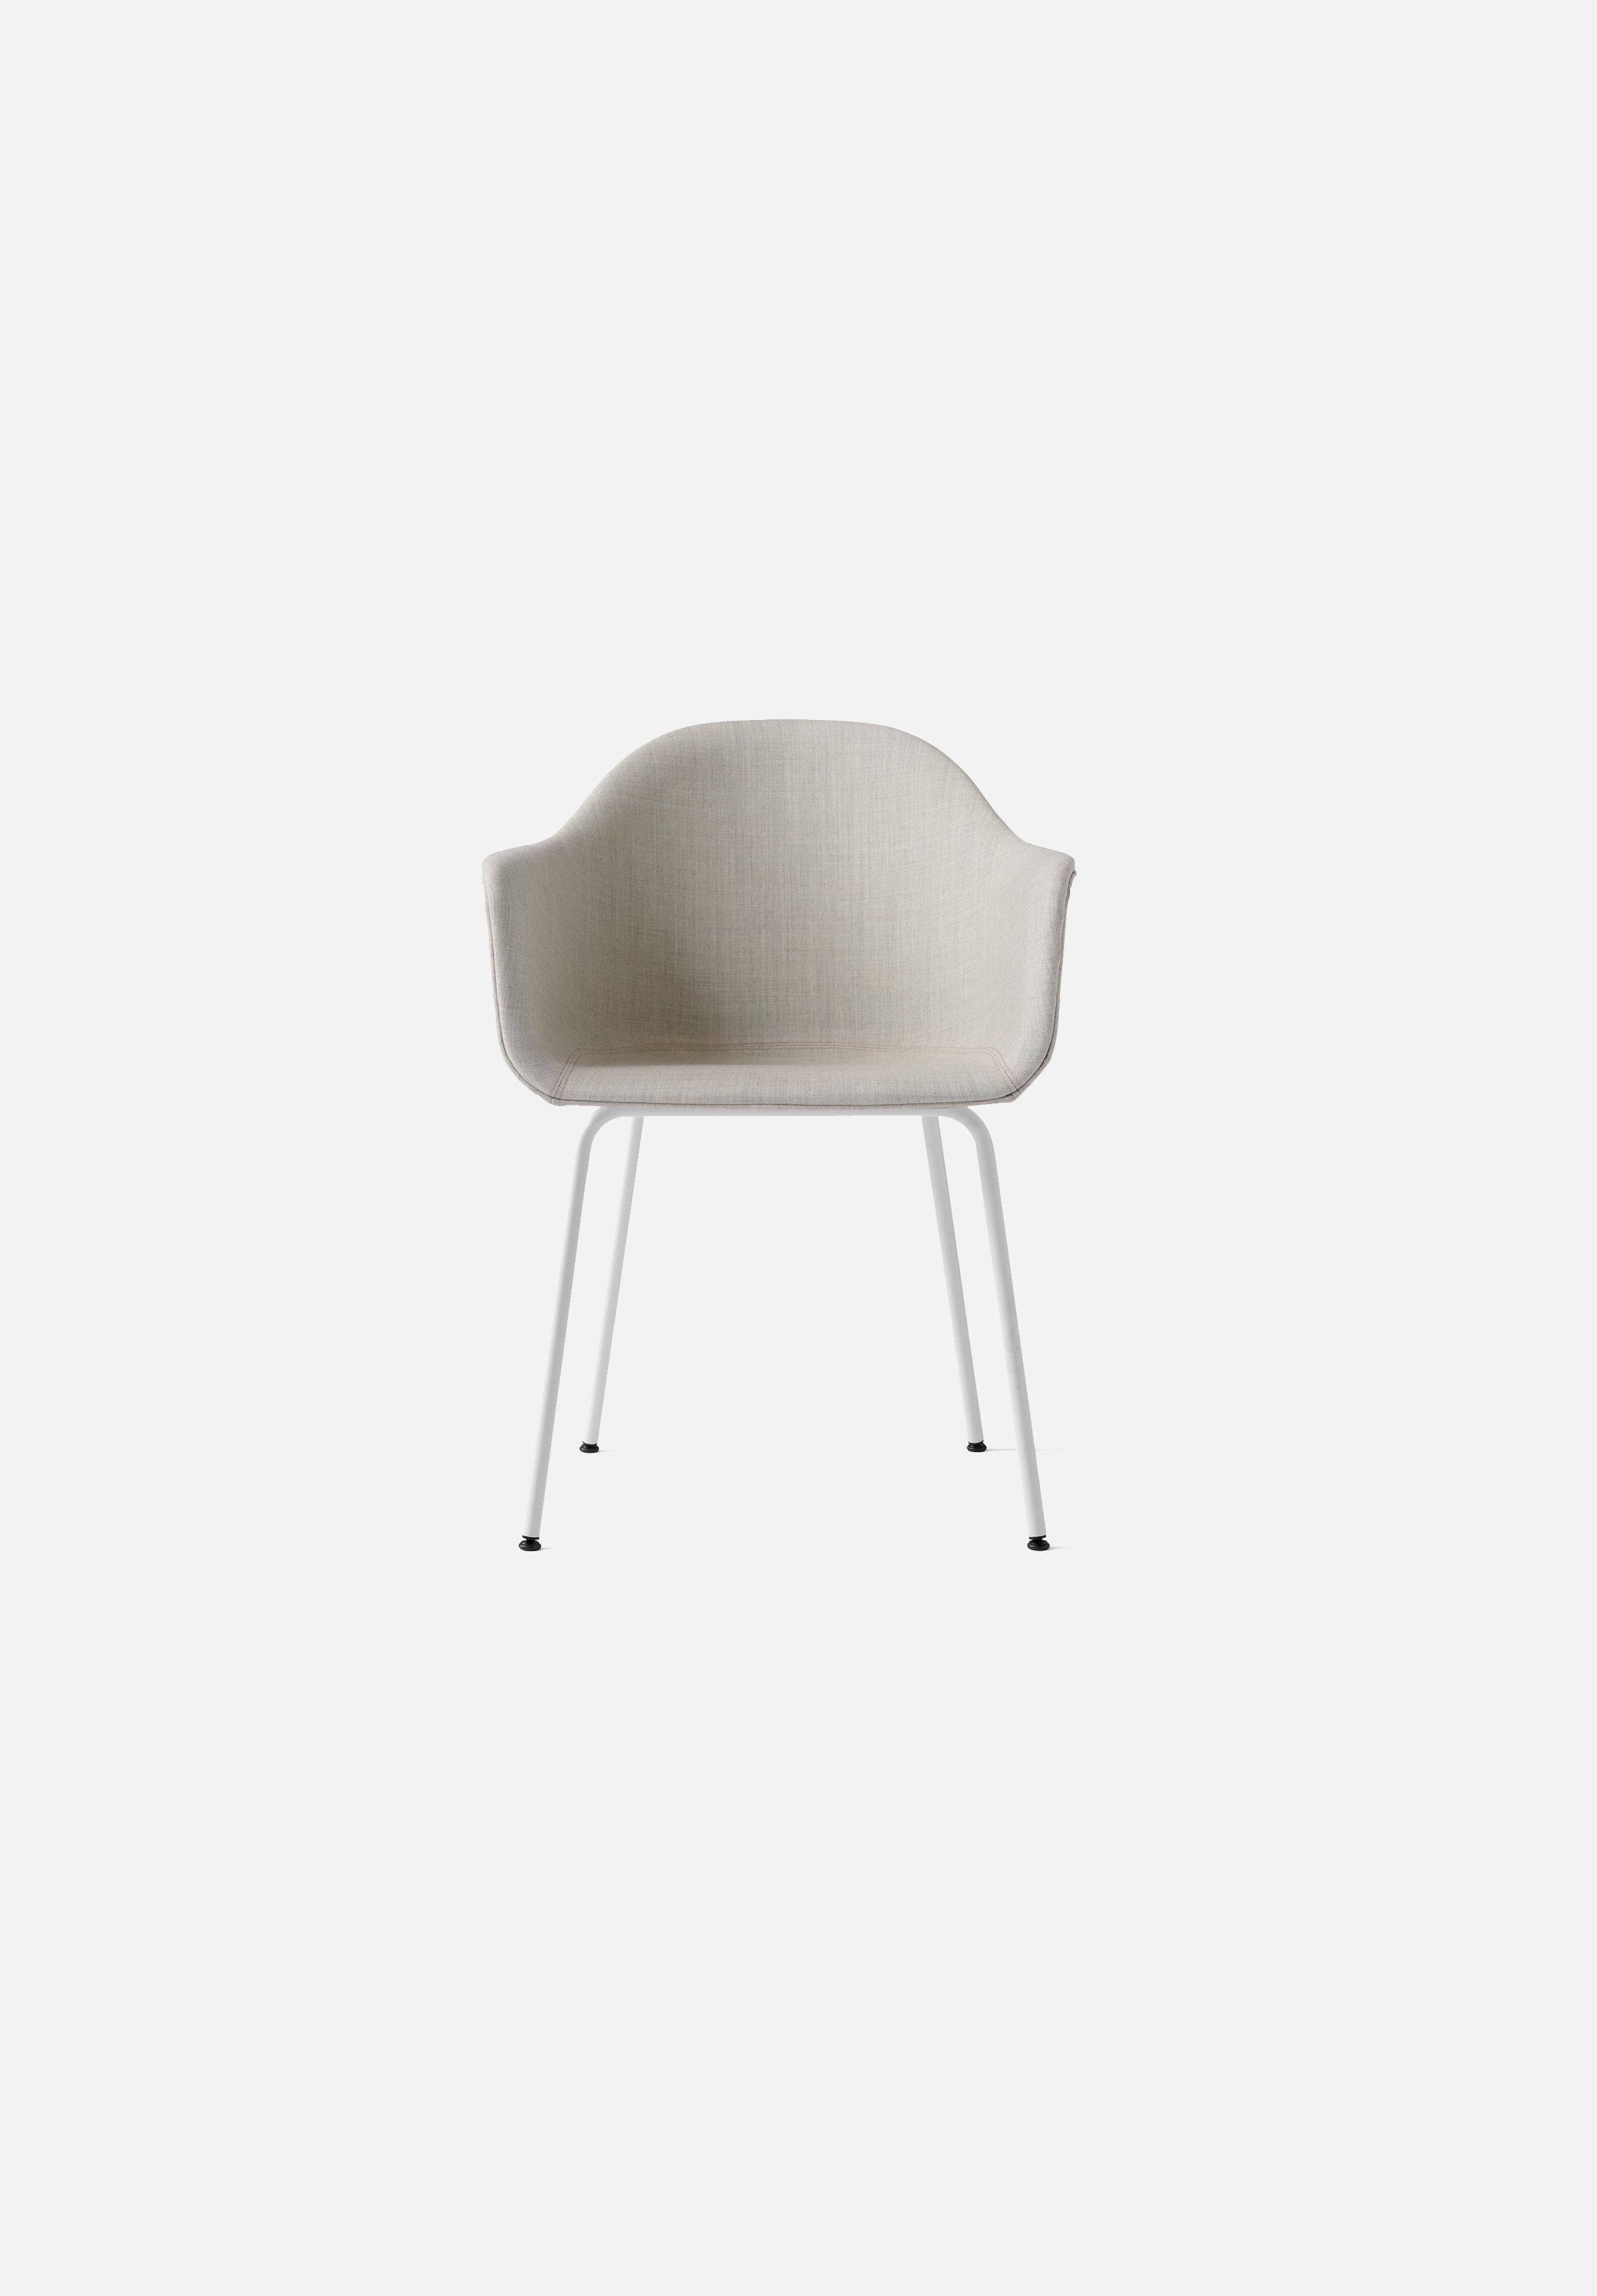 Harbour Chair - Steel Base-Norm Architects-Menu-remix_2-White Steel-danish-interior-furniture-denmark-Average-design-toronto-canada